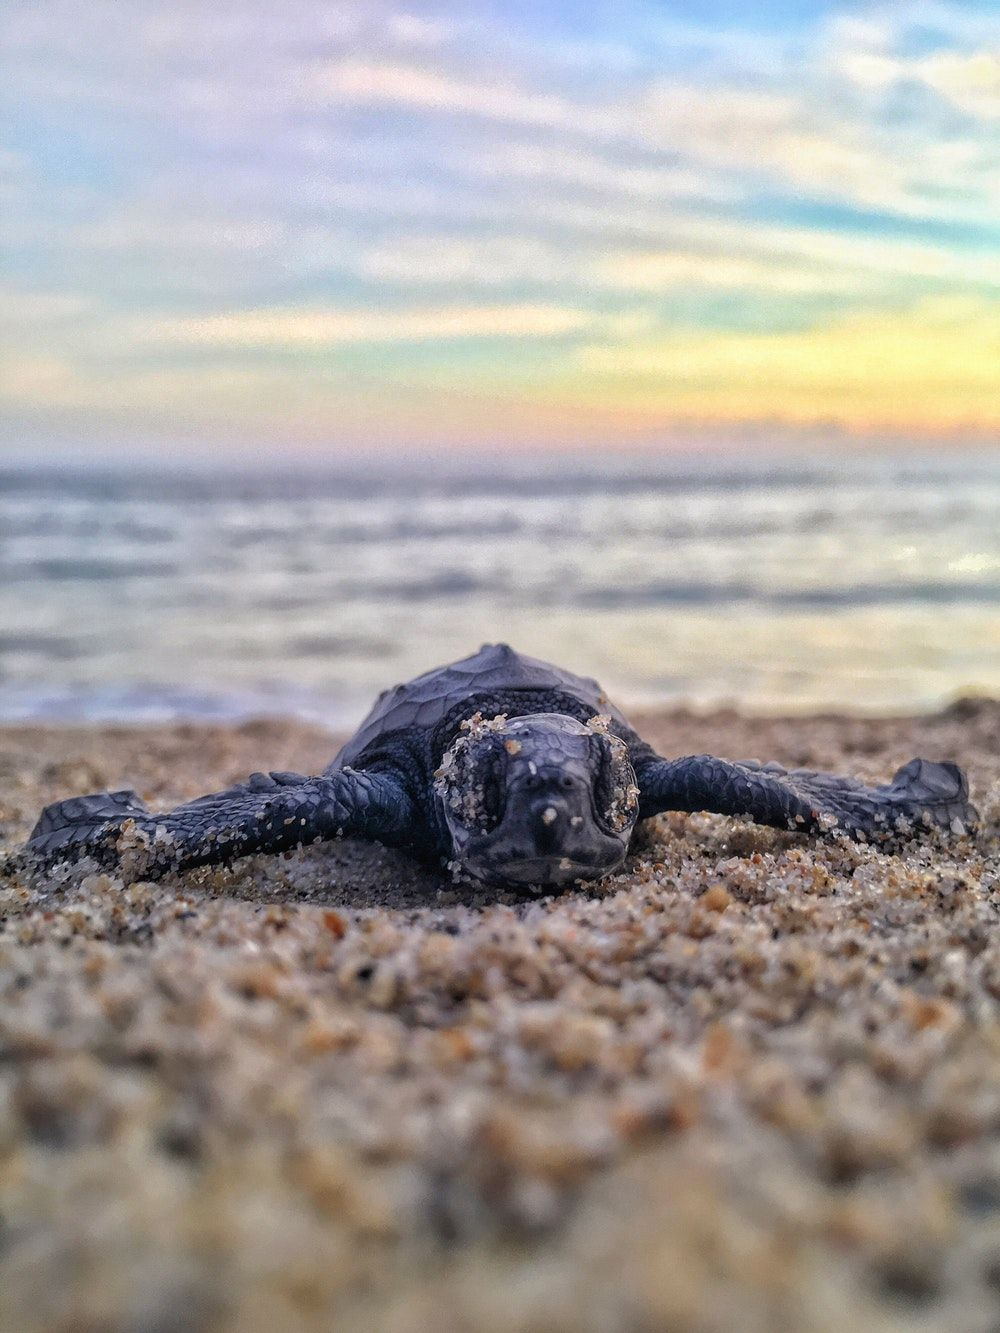 1000x1333 500+ Baby Sea Turtle Pictures [HD] | Download Free Images on Unsplash